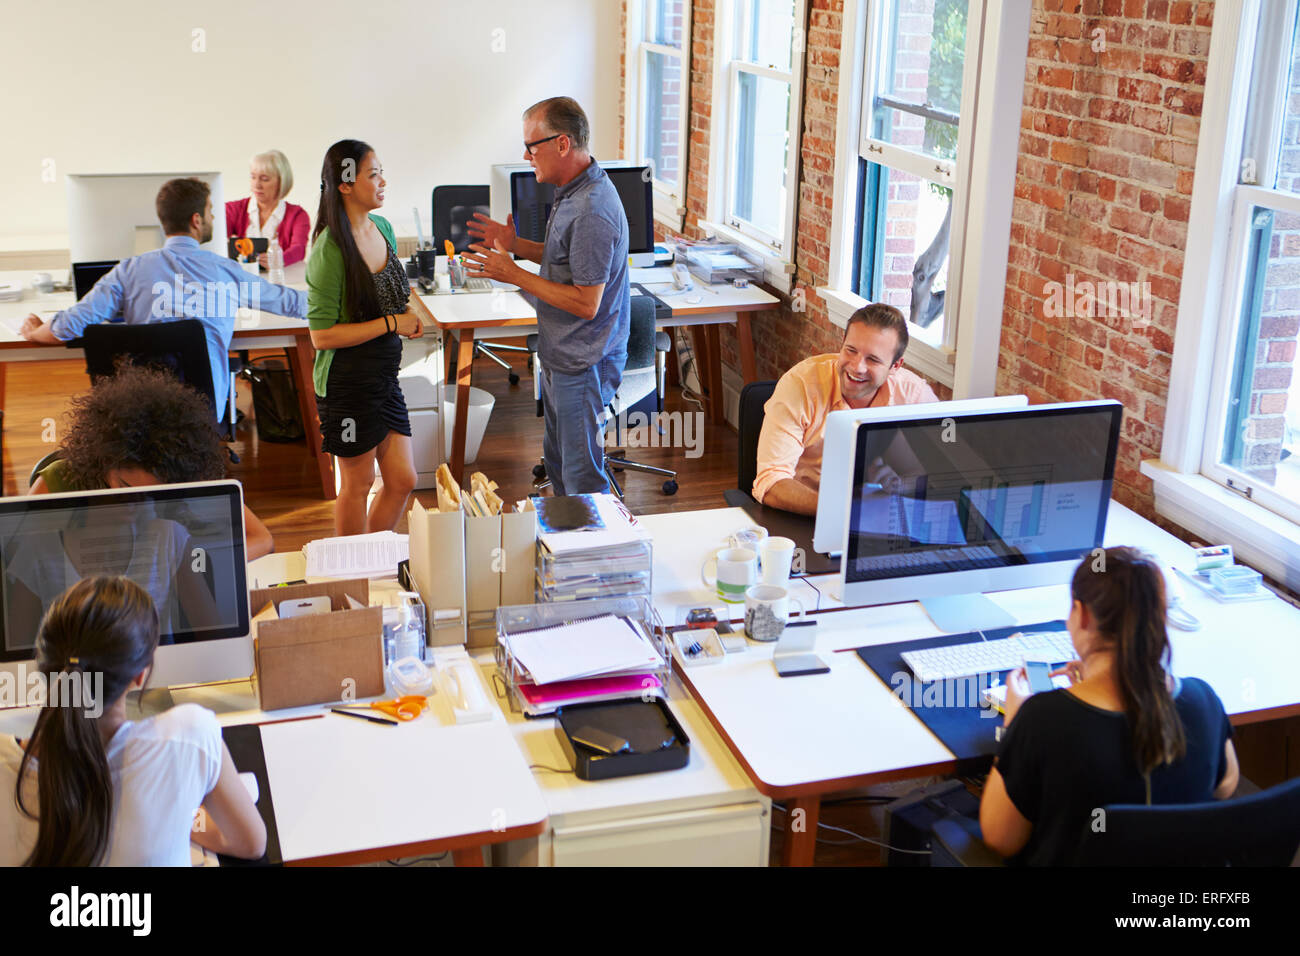 wide angle view busy design office. Exellent Wide Wide Angle View Of Busy Design Office With Workers At Desks Inside A